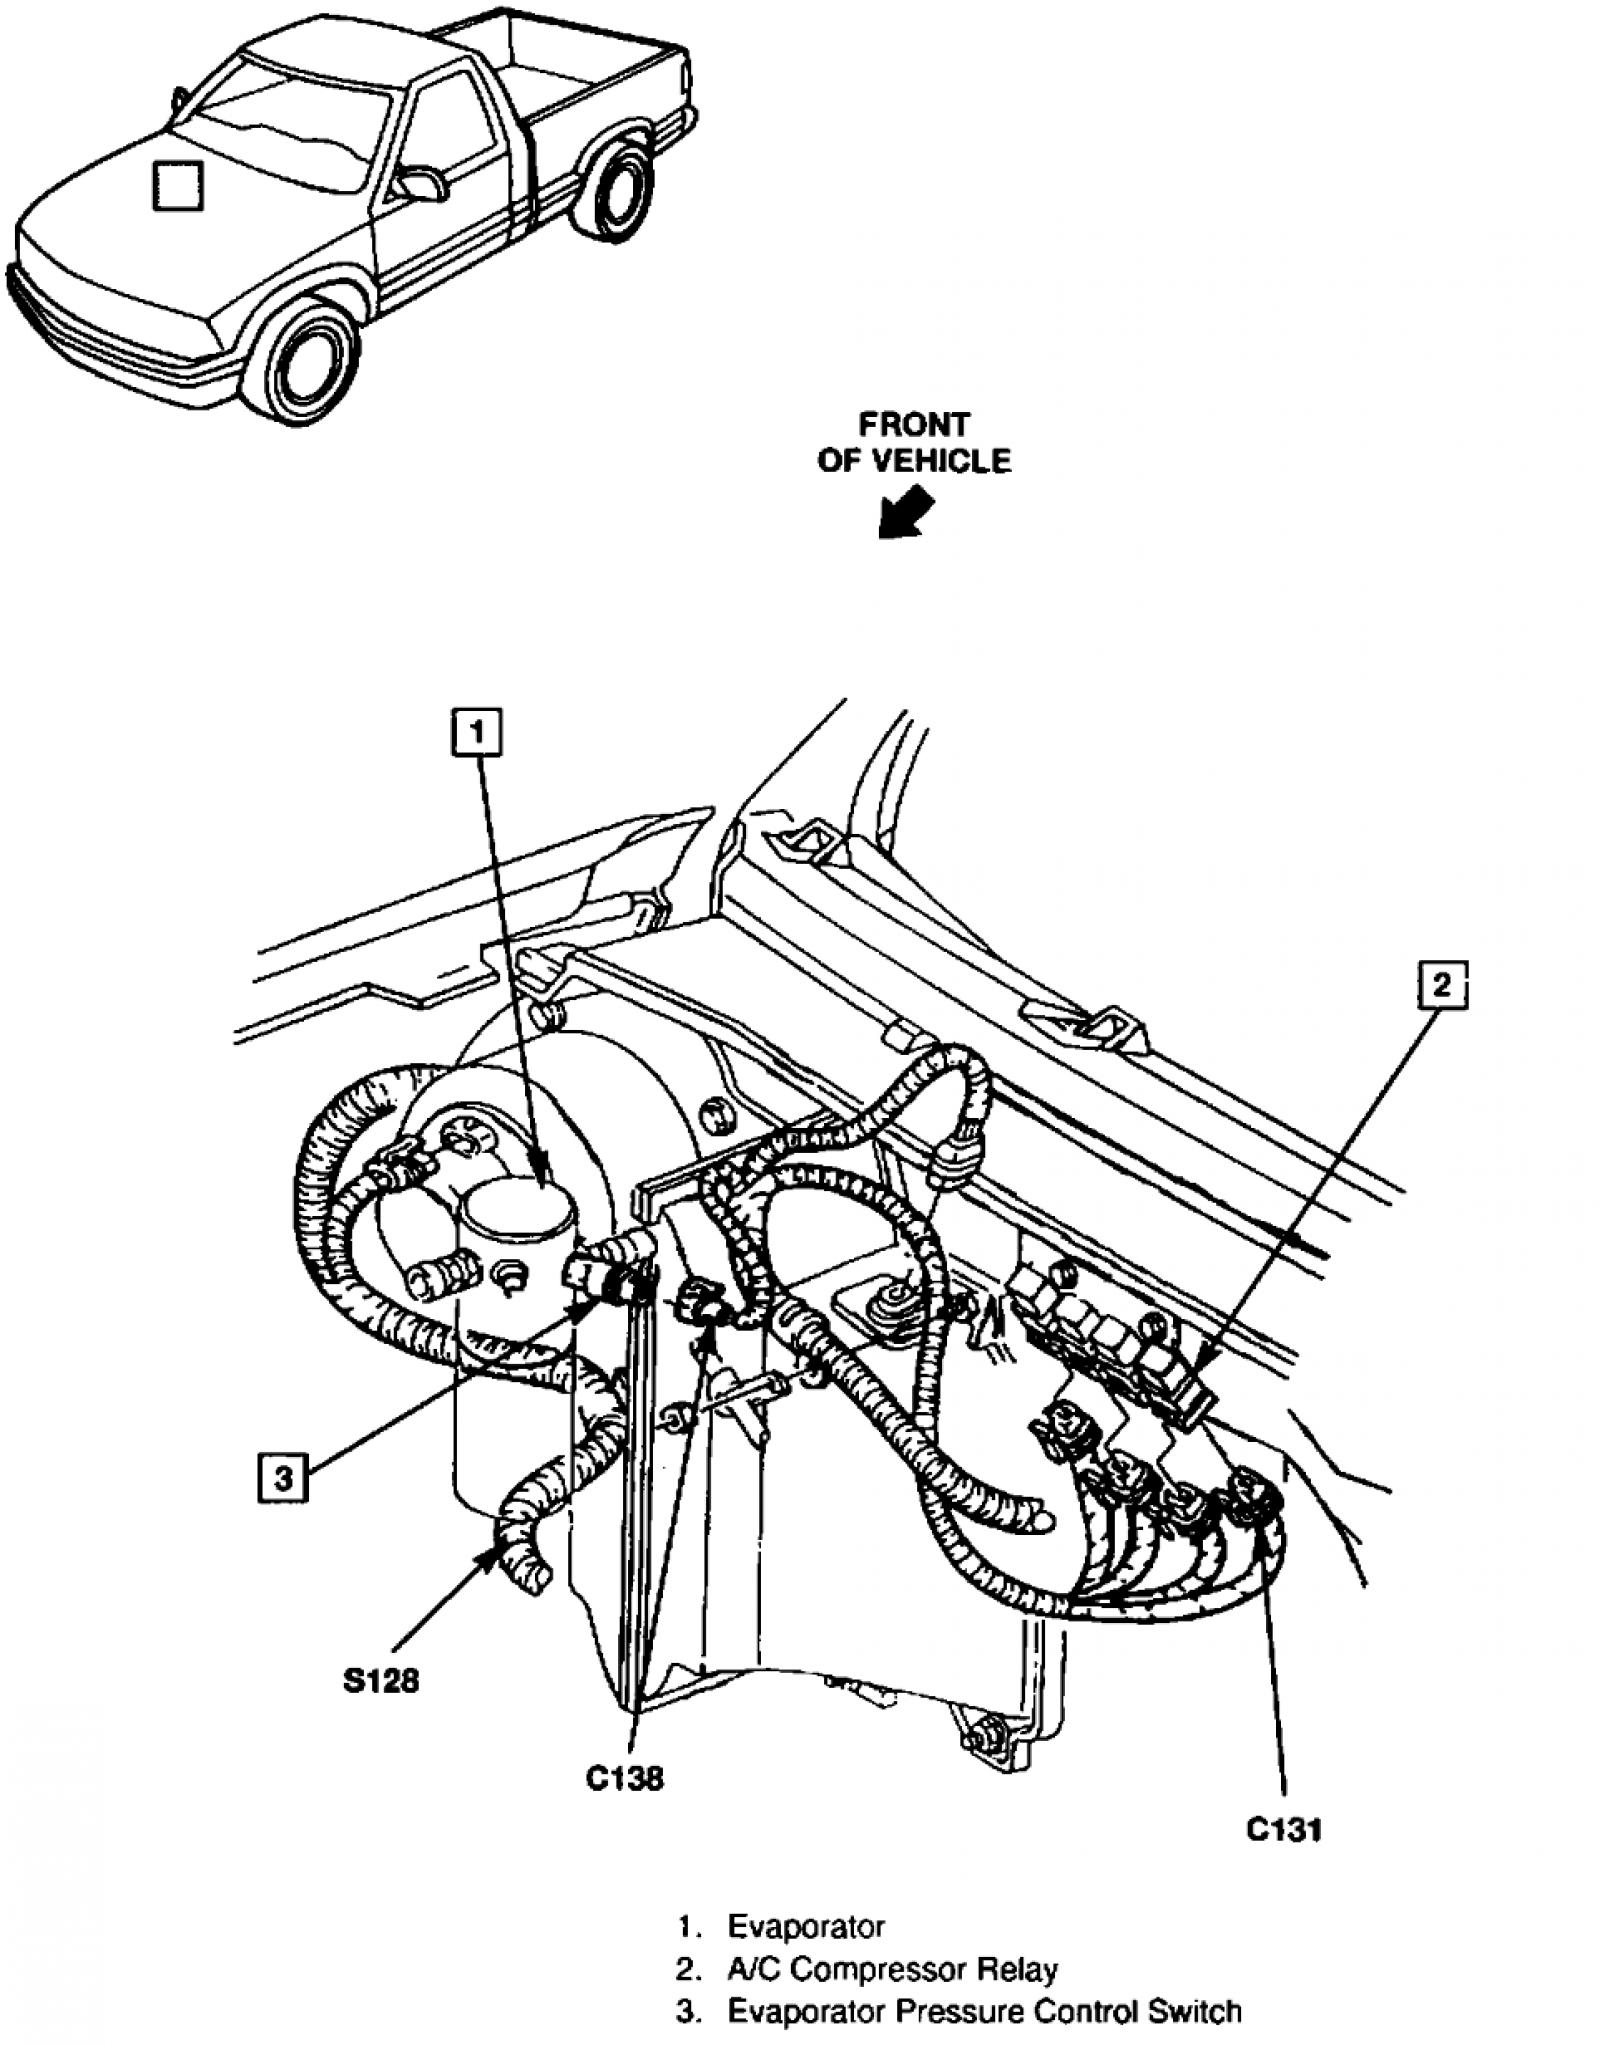 Gmc Sonoma Under The Hood Diagram